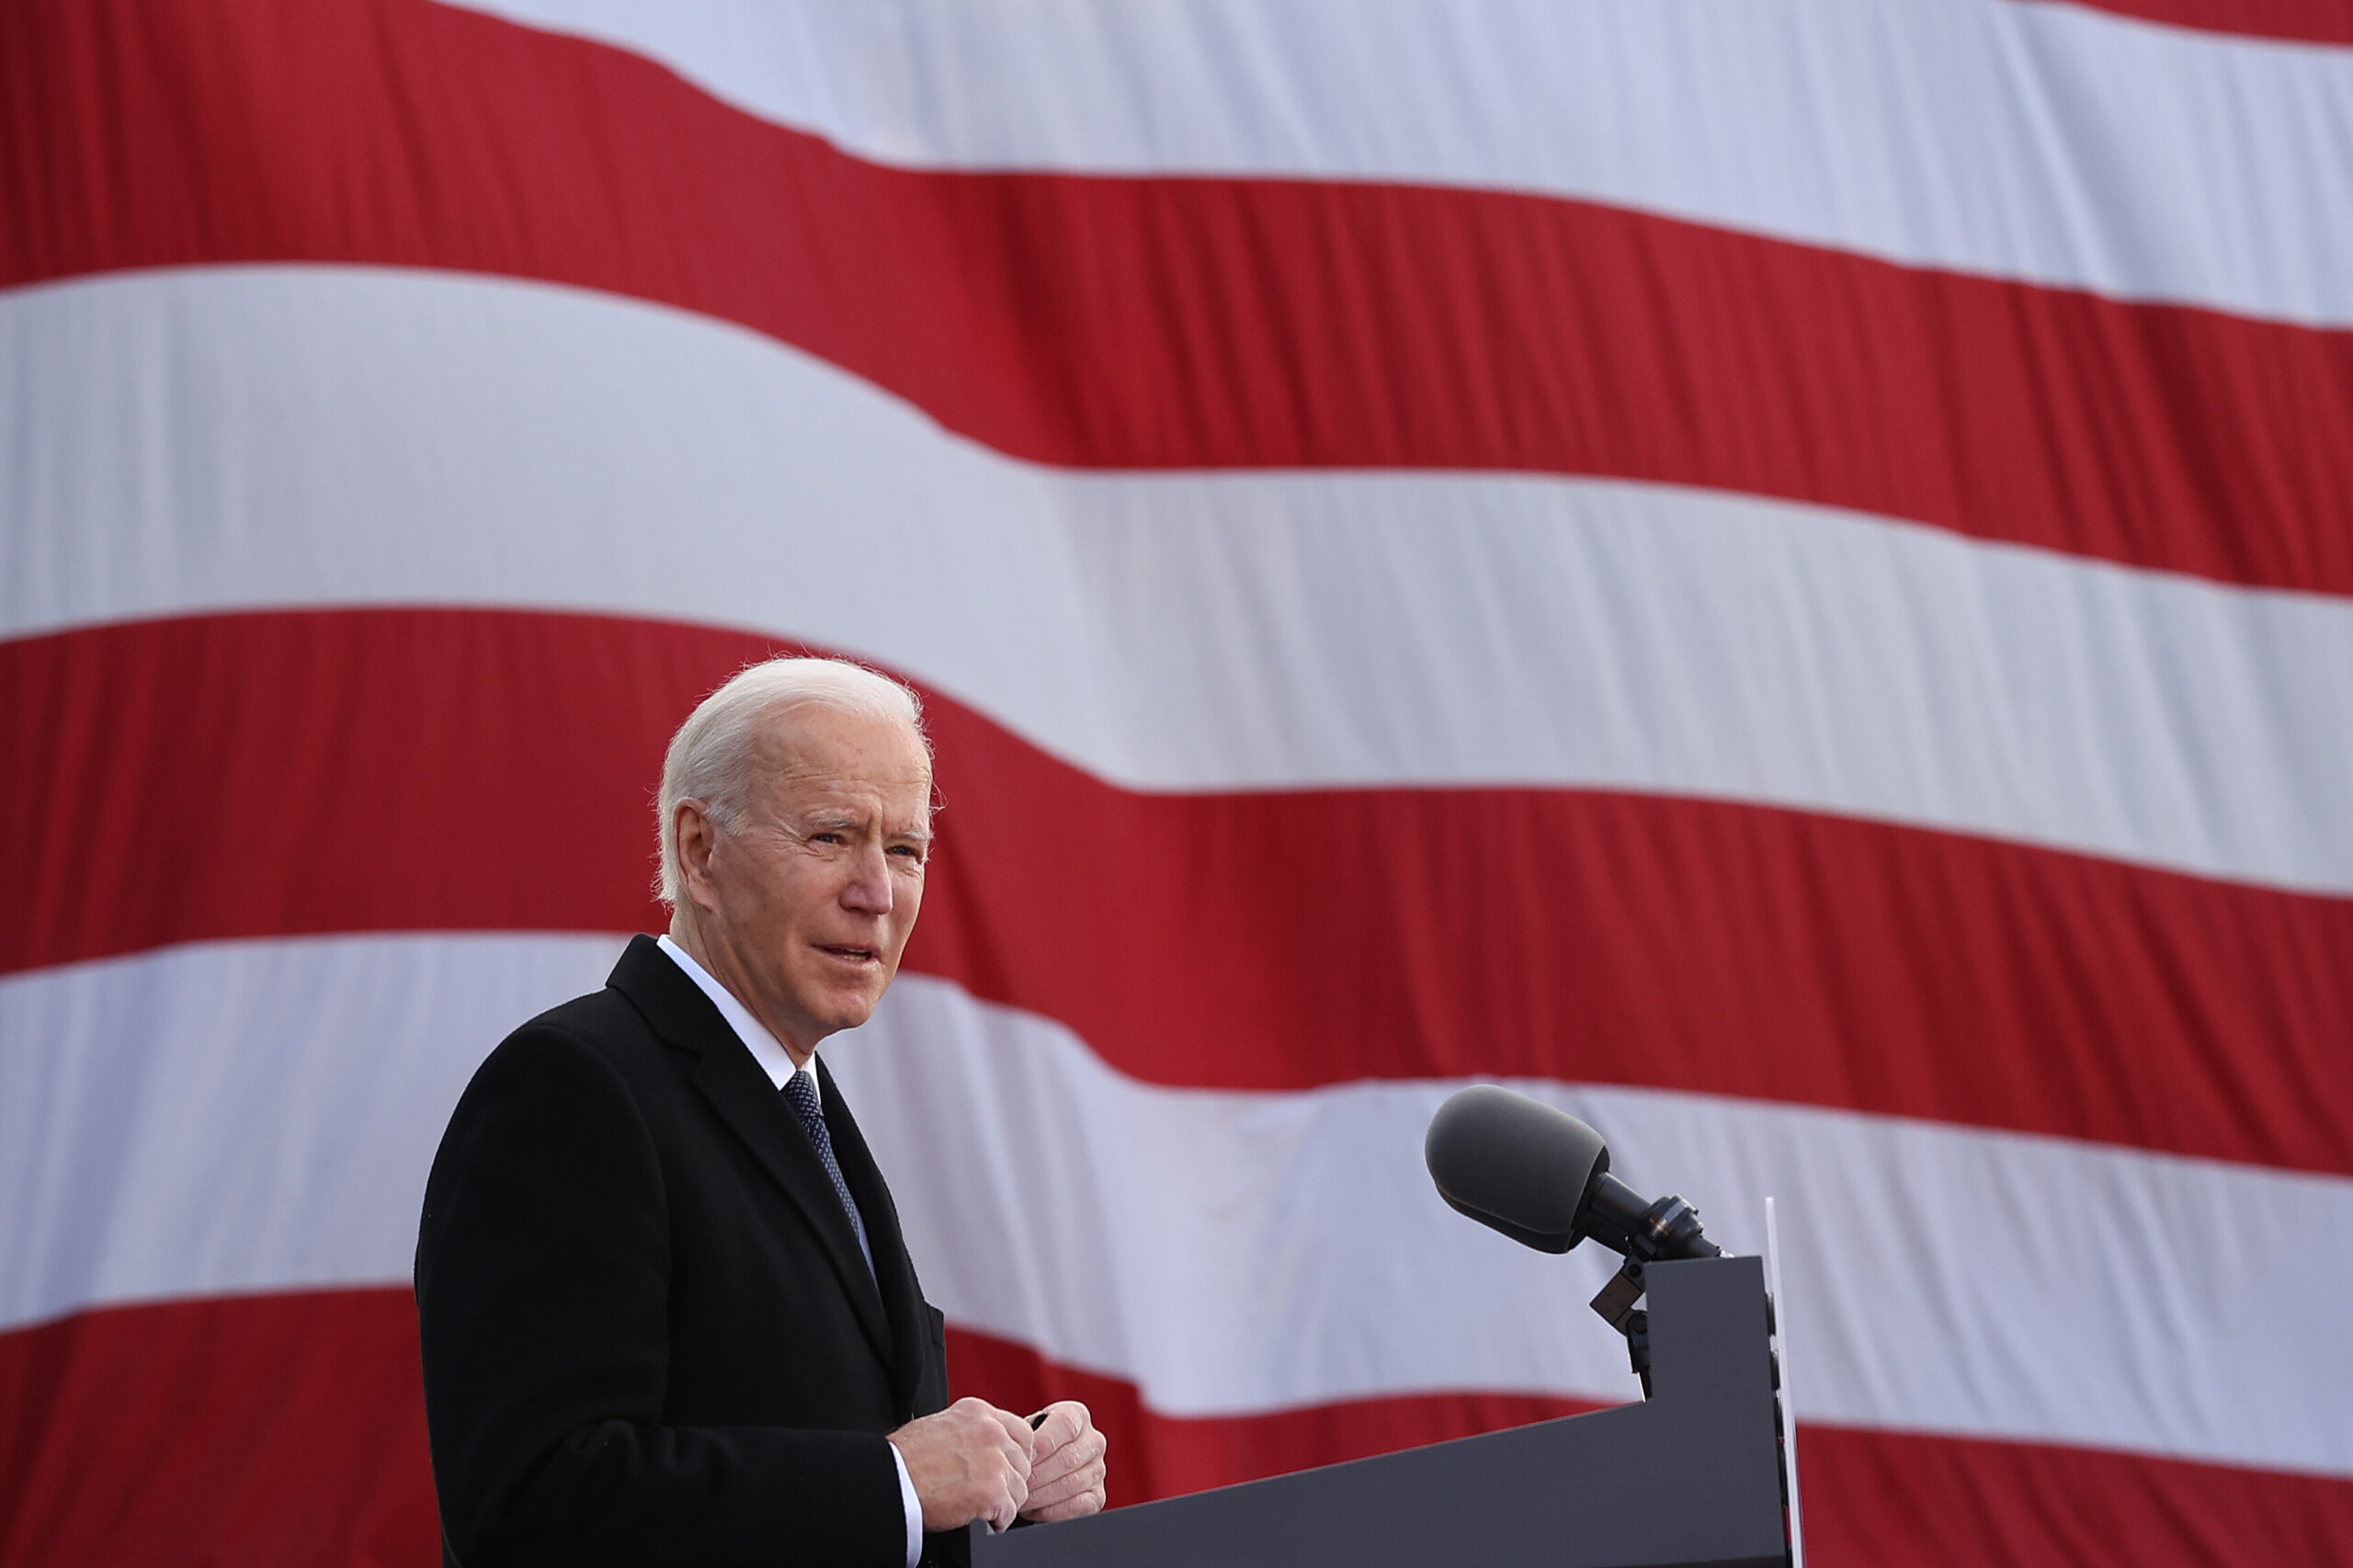 <i>Chip Somodevilla/Getty Images North America/Getty Images</i><br/>President Joe Biden on Sunday will accept an award from the President of Kosovo on behalf of his son Beau Biden for his work helping to strengthen the war-torn country's justice system